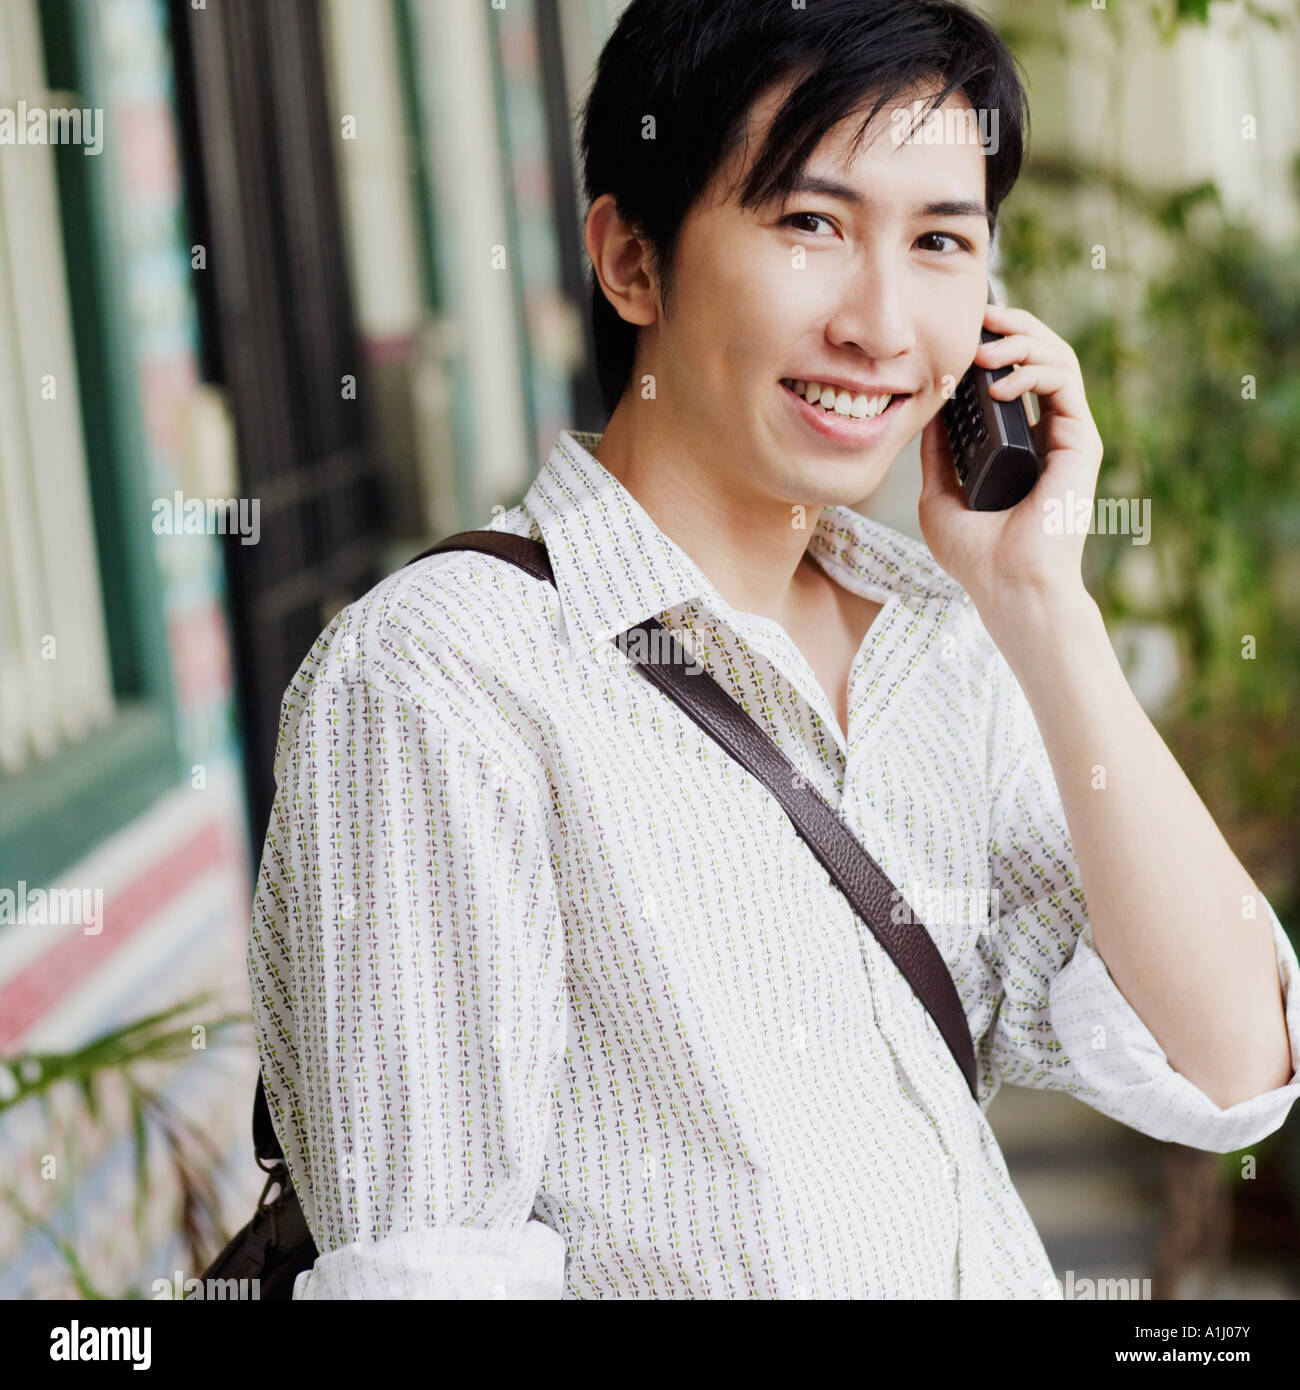 Portrait of a young man talking on a cordless phone - Stock Image